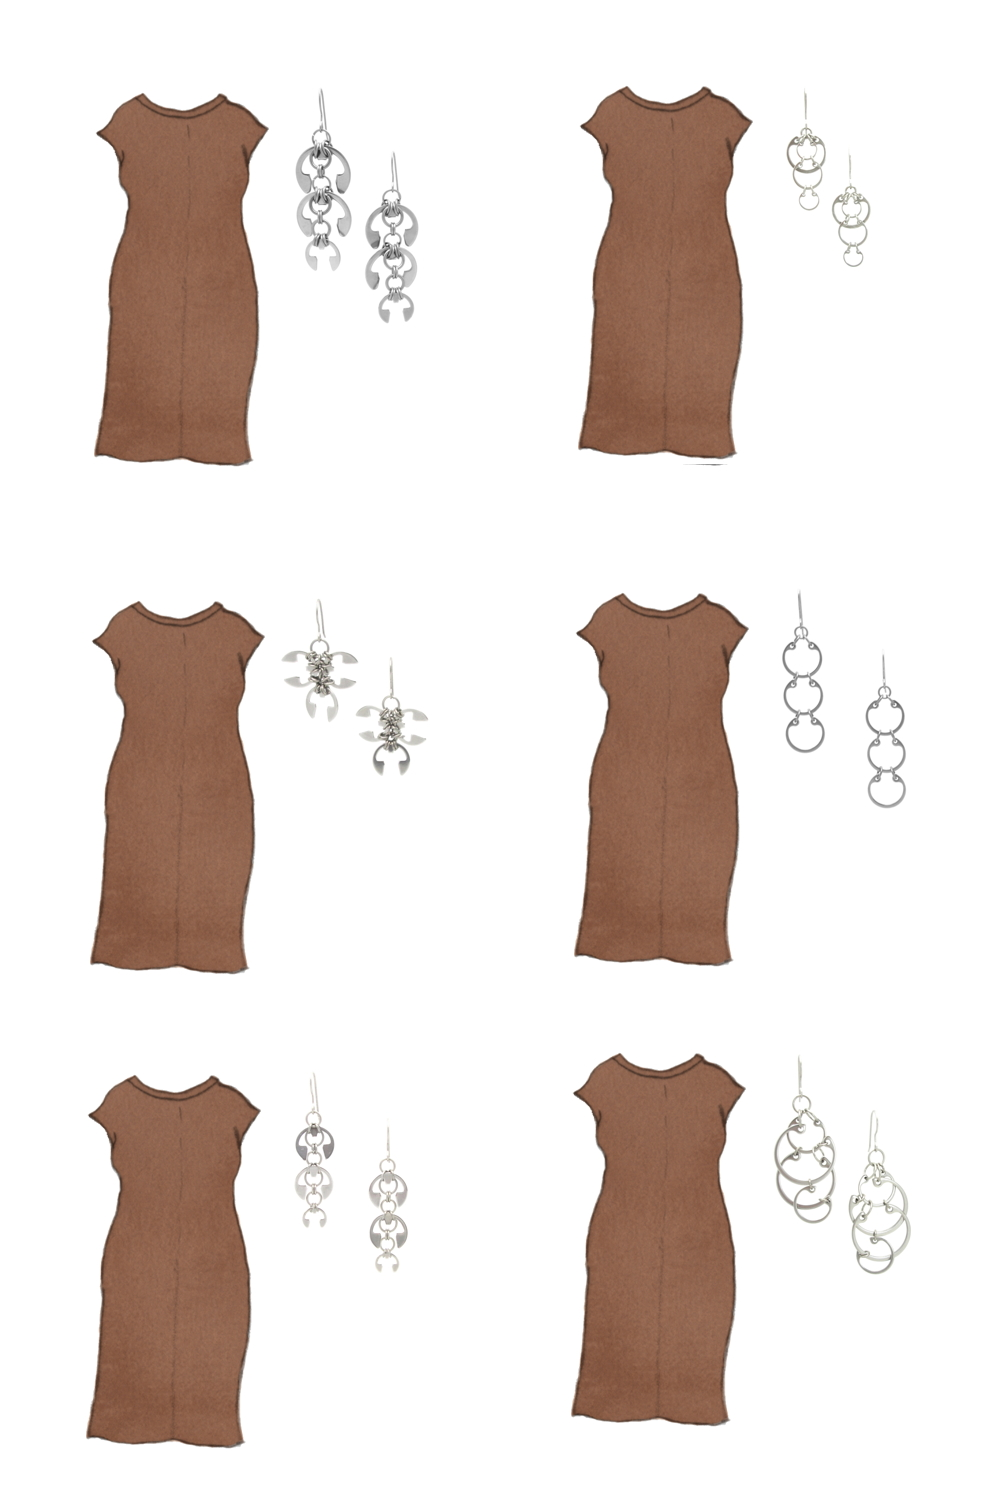 Style sketch of Everlane's Luxe Cotton Side-Slit Tee Dress in brown, with 6 styles of Wraptillion's modern chainmail earrings.